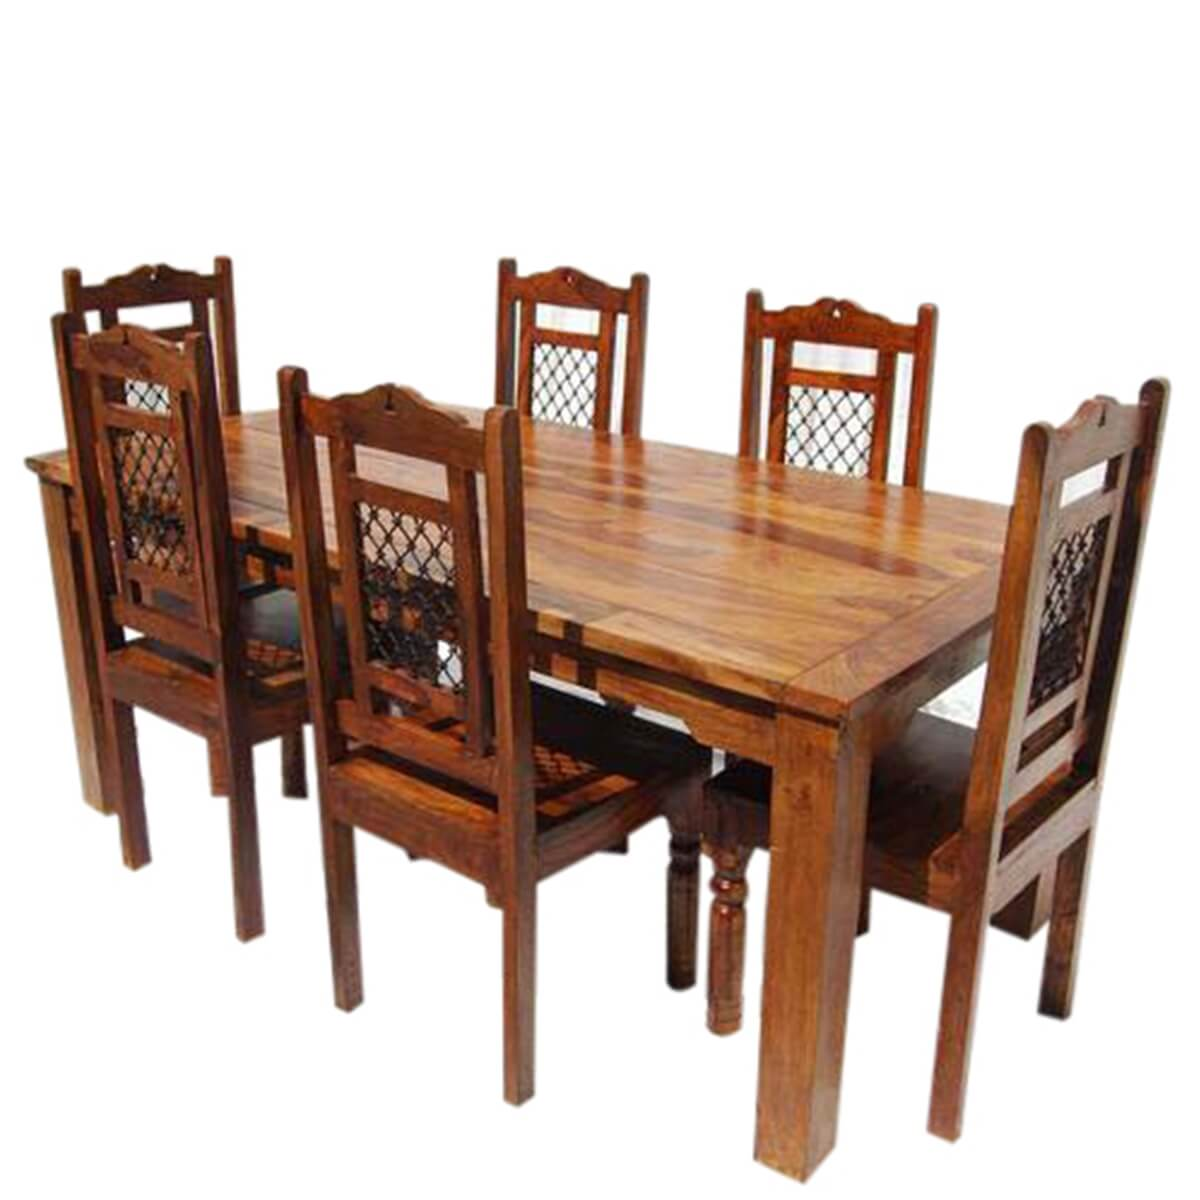 Farmhouse Dining Table And Chairs: Swiss Alps Solid Wood 7Pc Farmhouse Dining Table And Chair Set